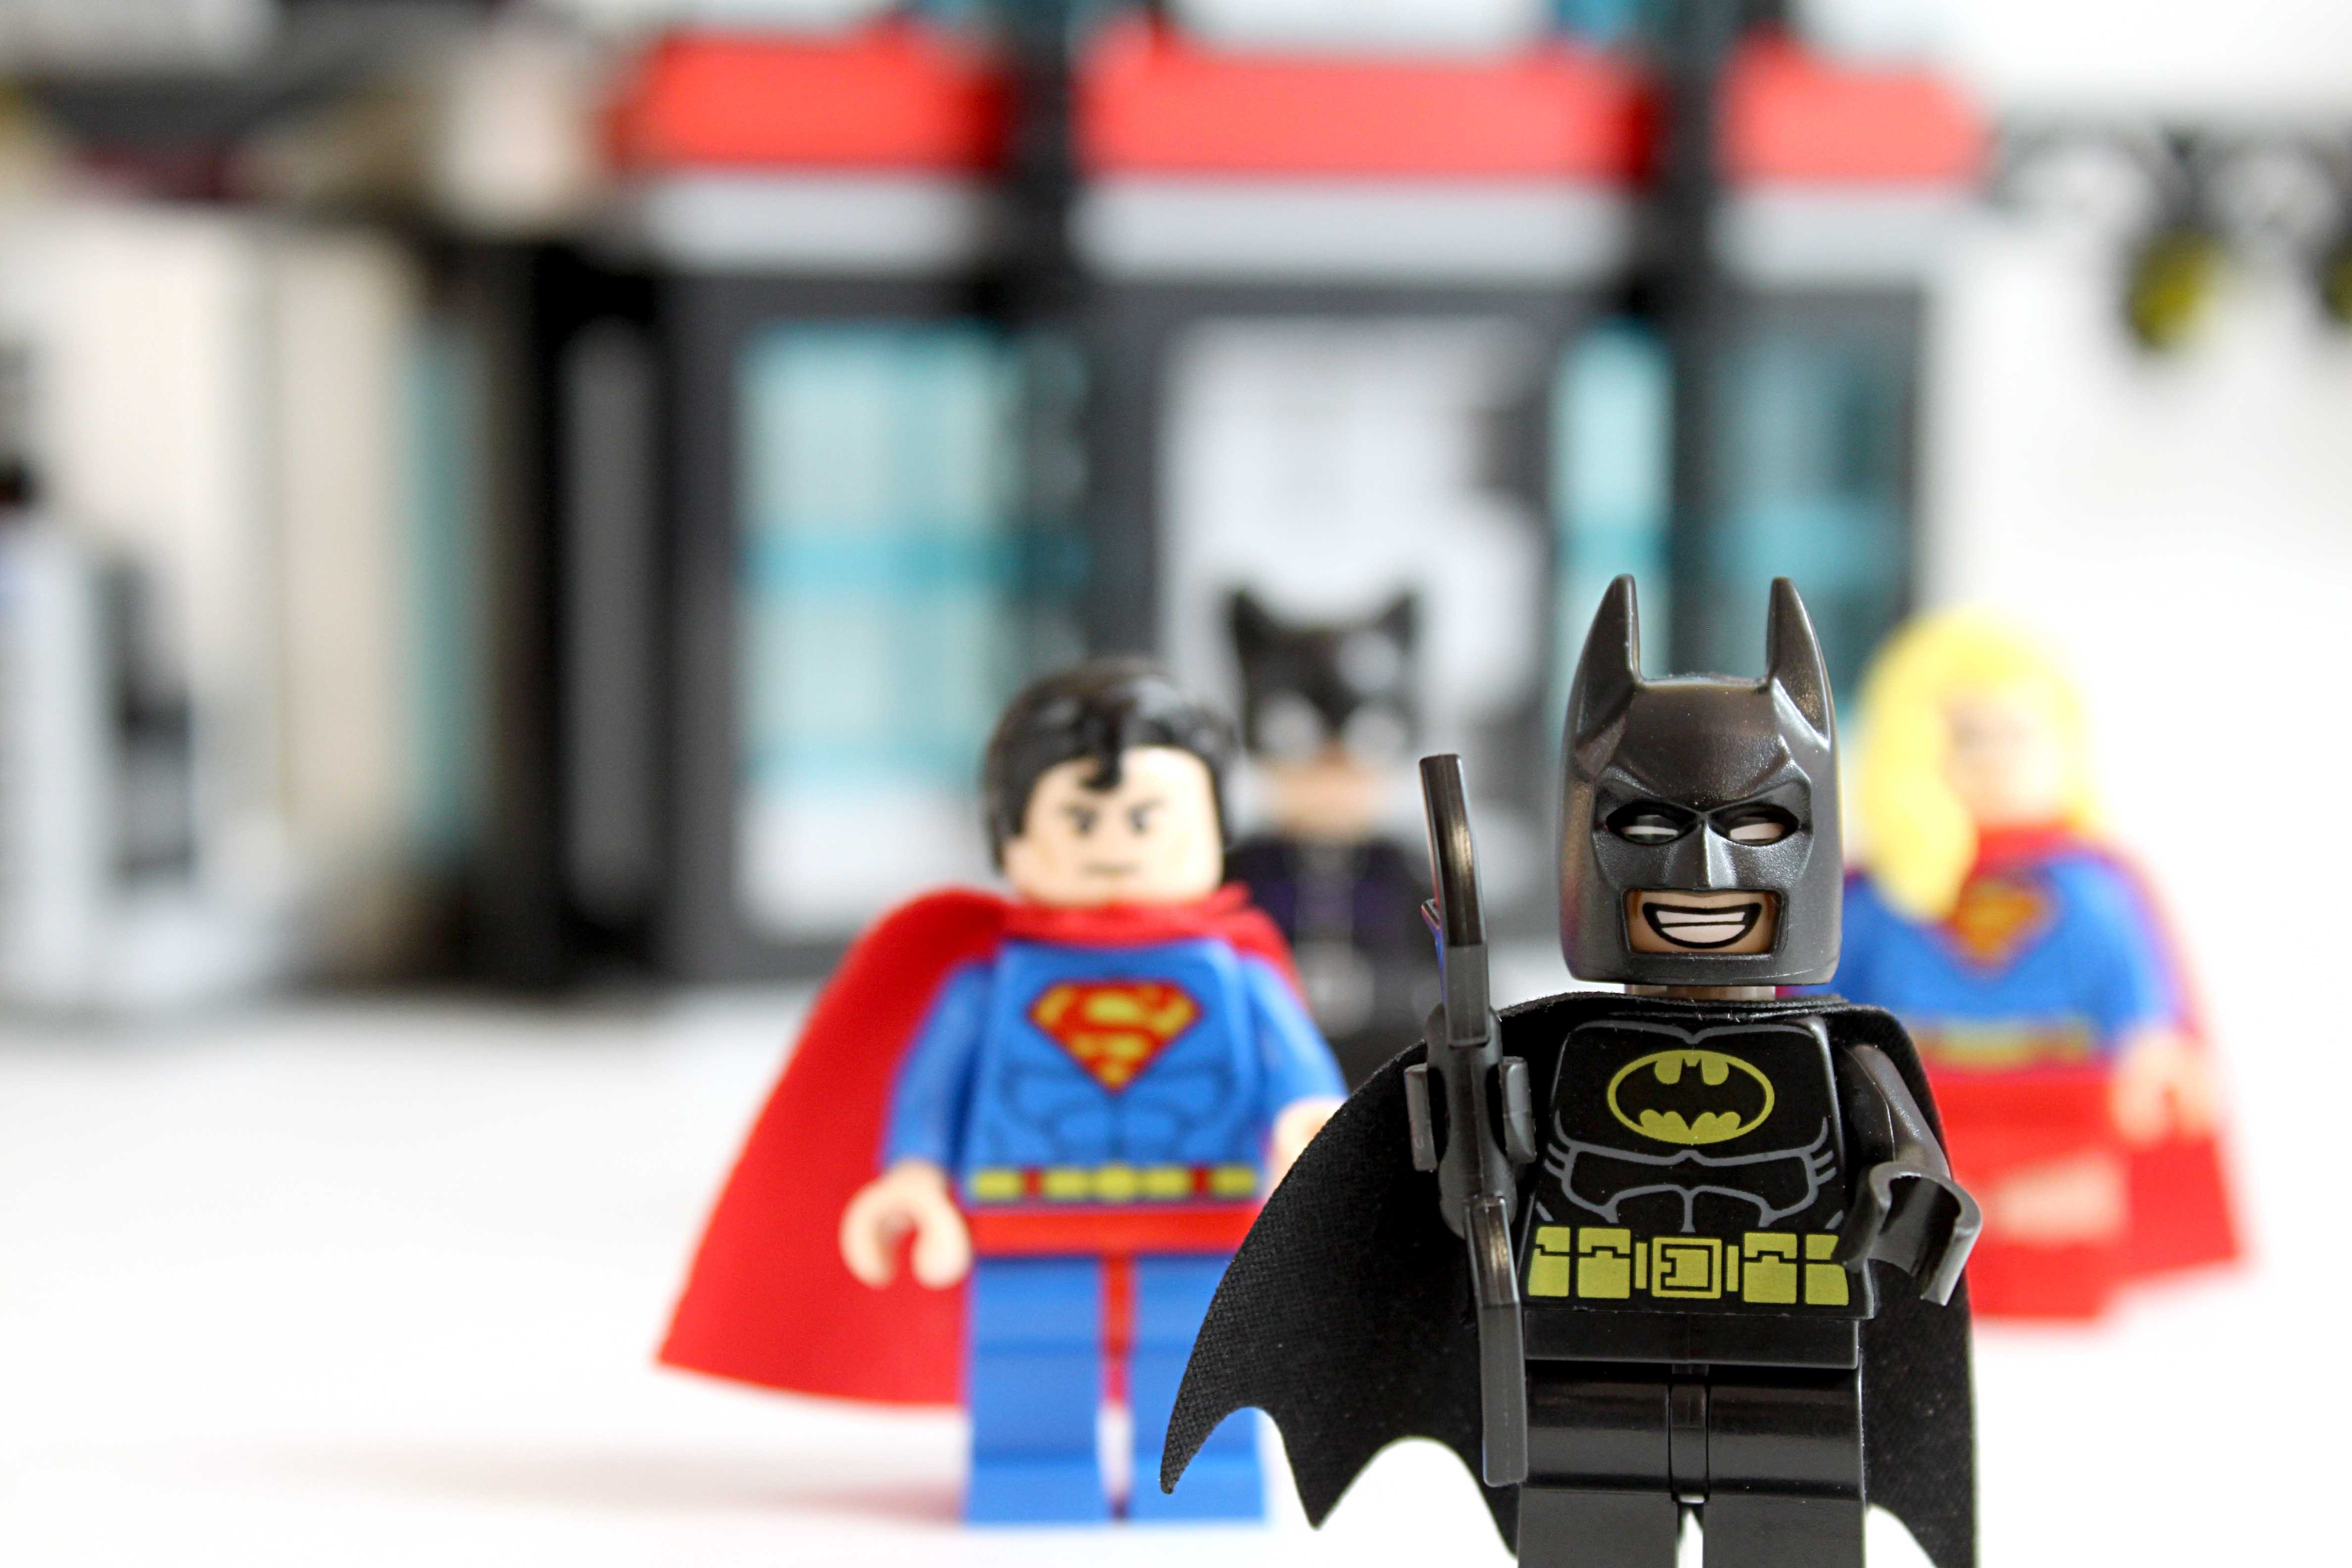 Lego Batman Superman image used for Editorial Purposes only